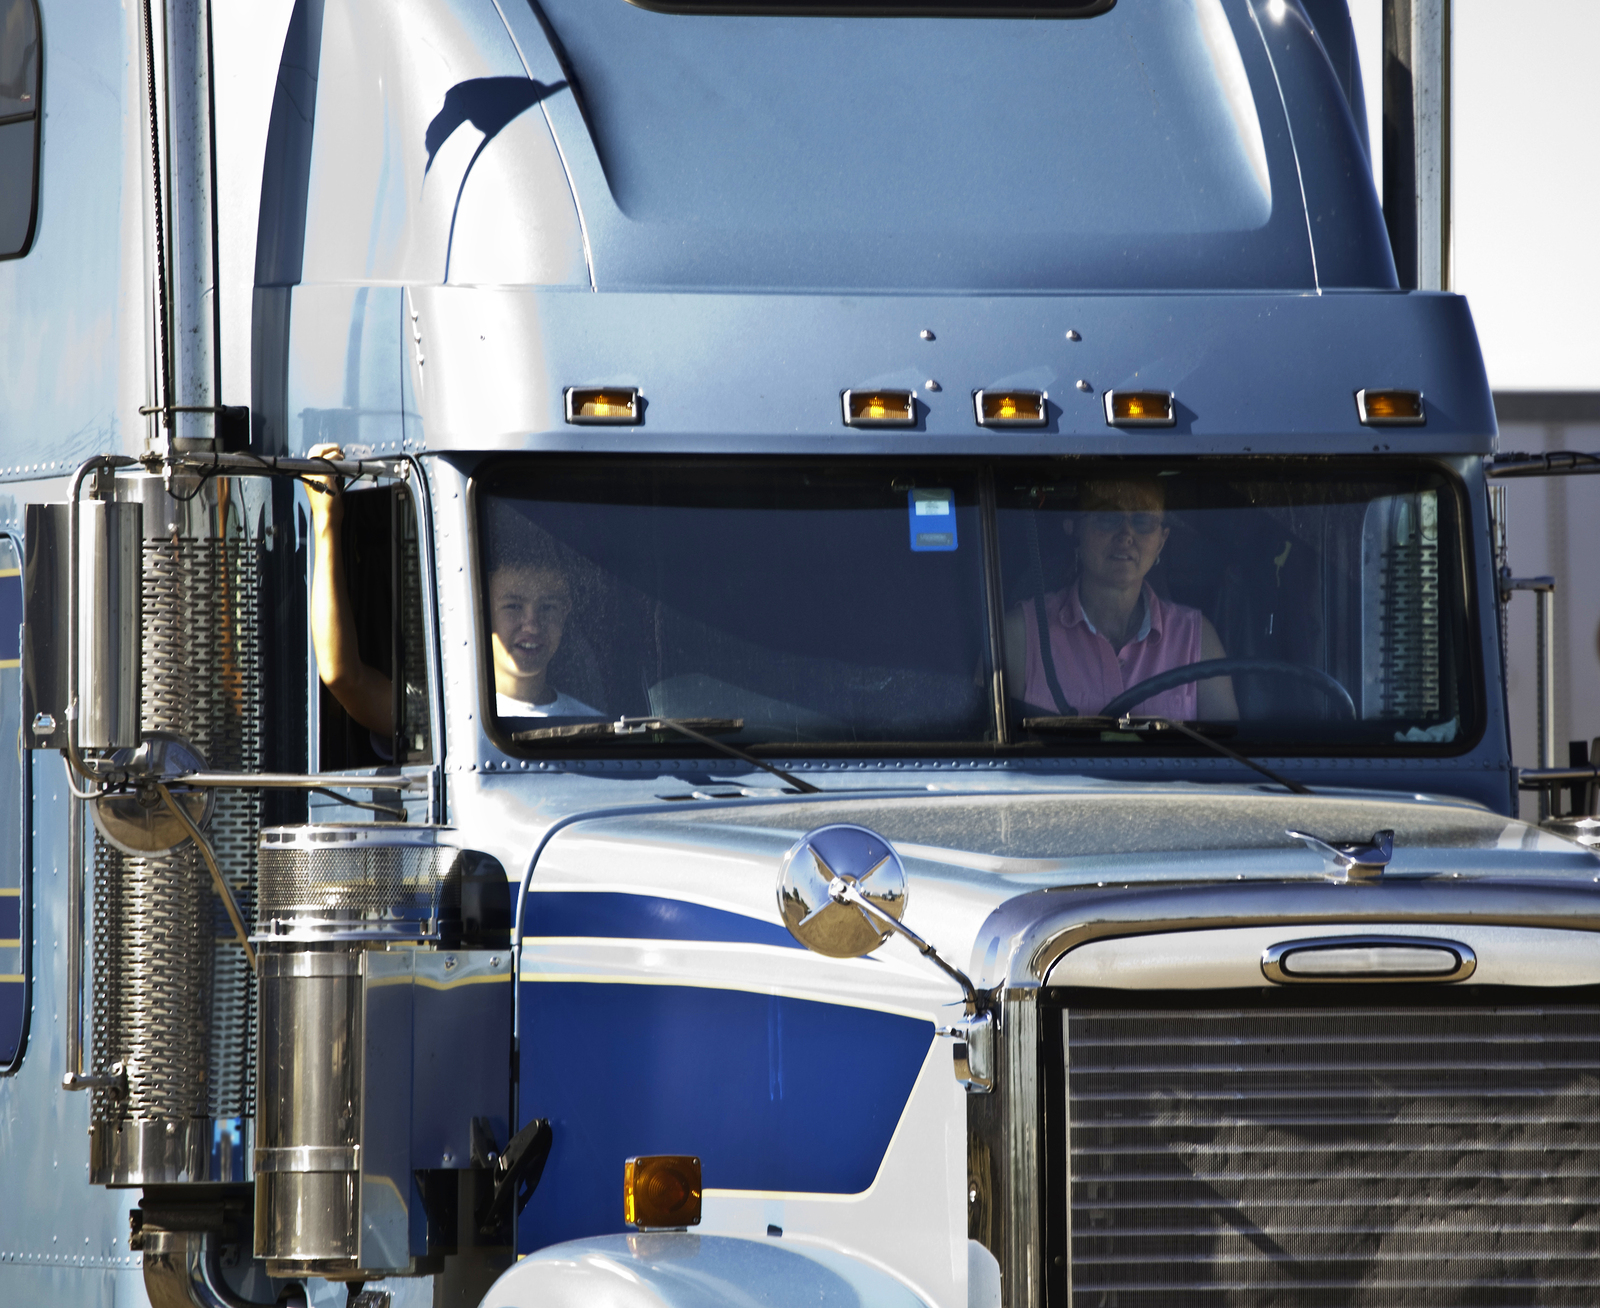 New 70 Hour Work Week Limit for CDL Drivers  Truck Driving